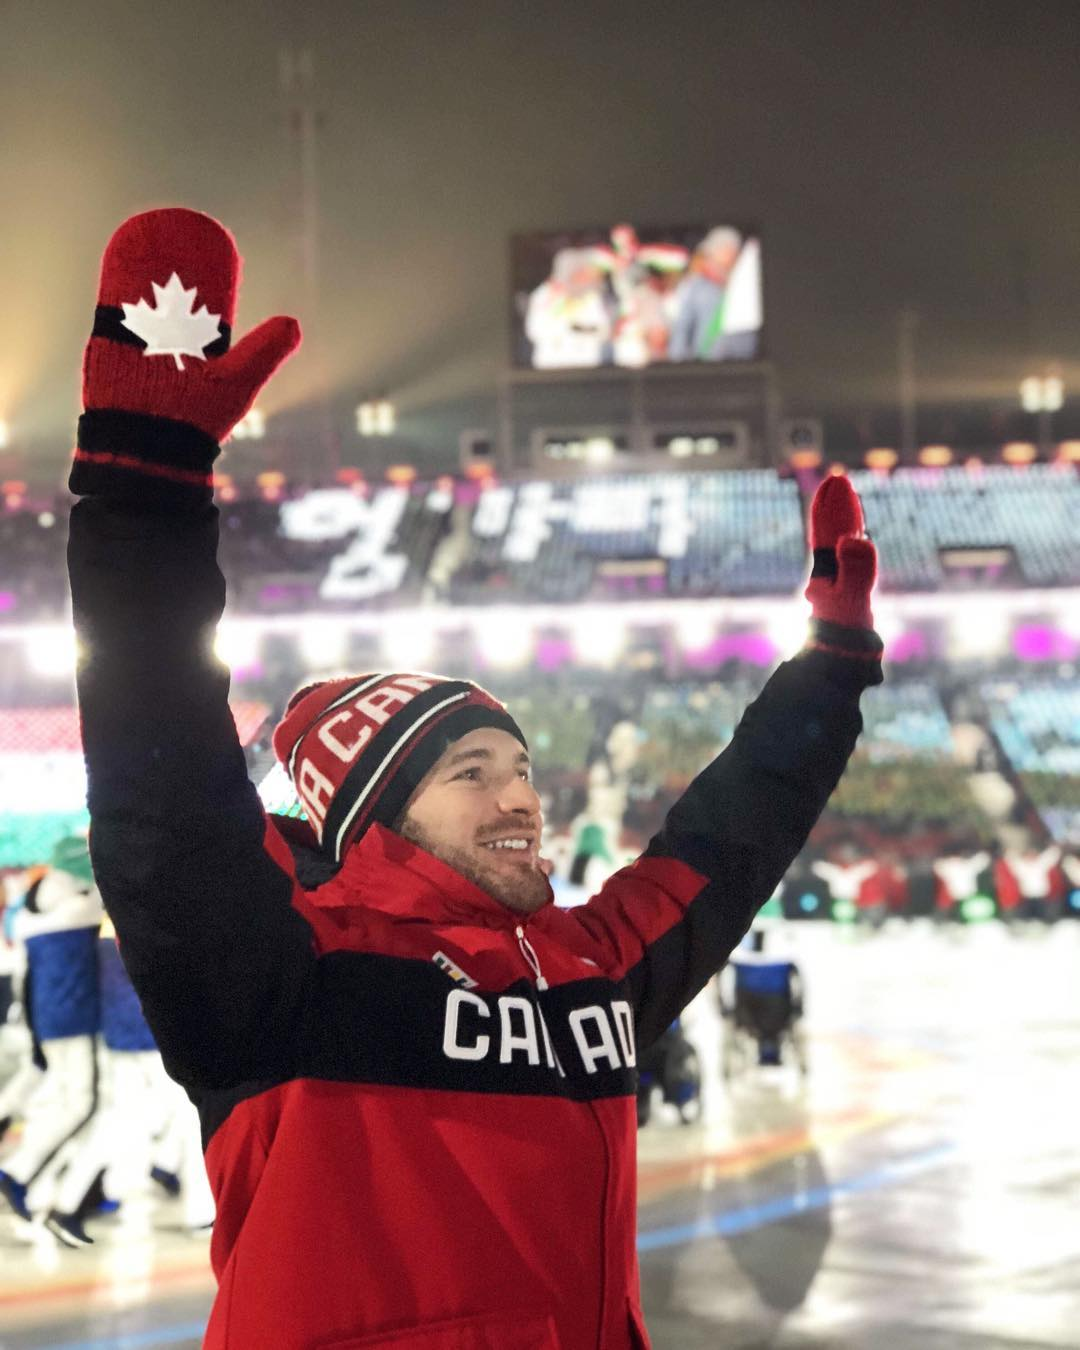 Tyler McGregor waving to fans at the paralympic games.